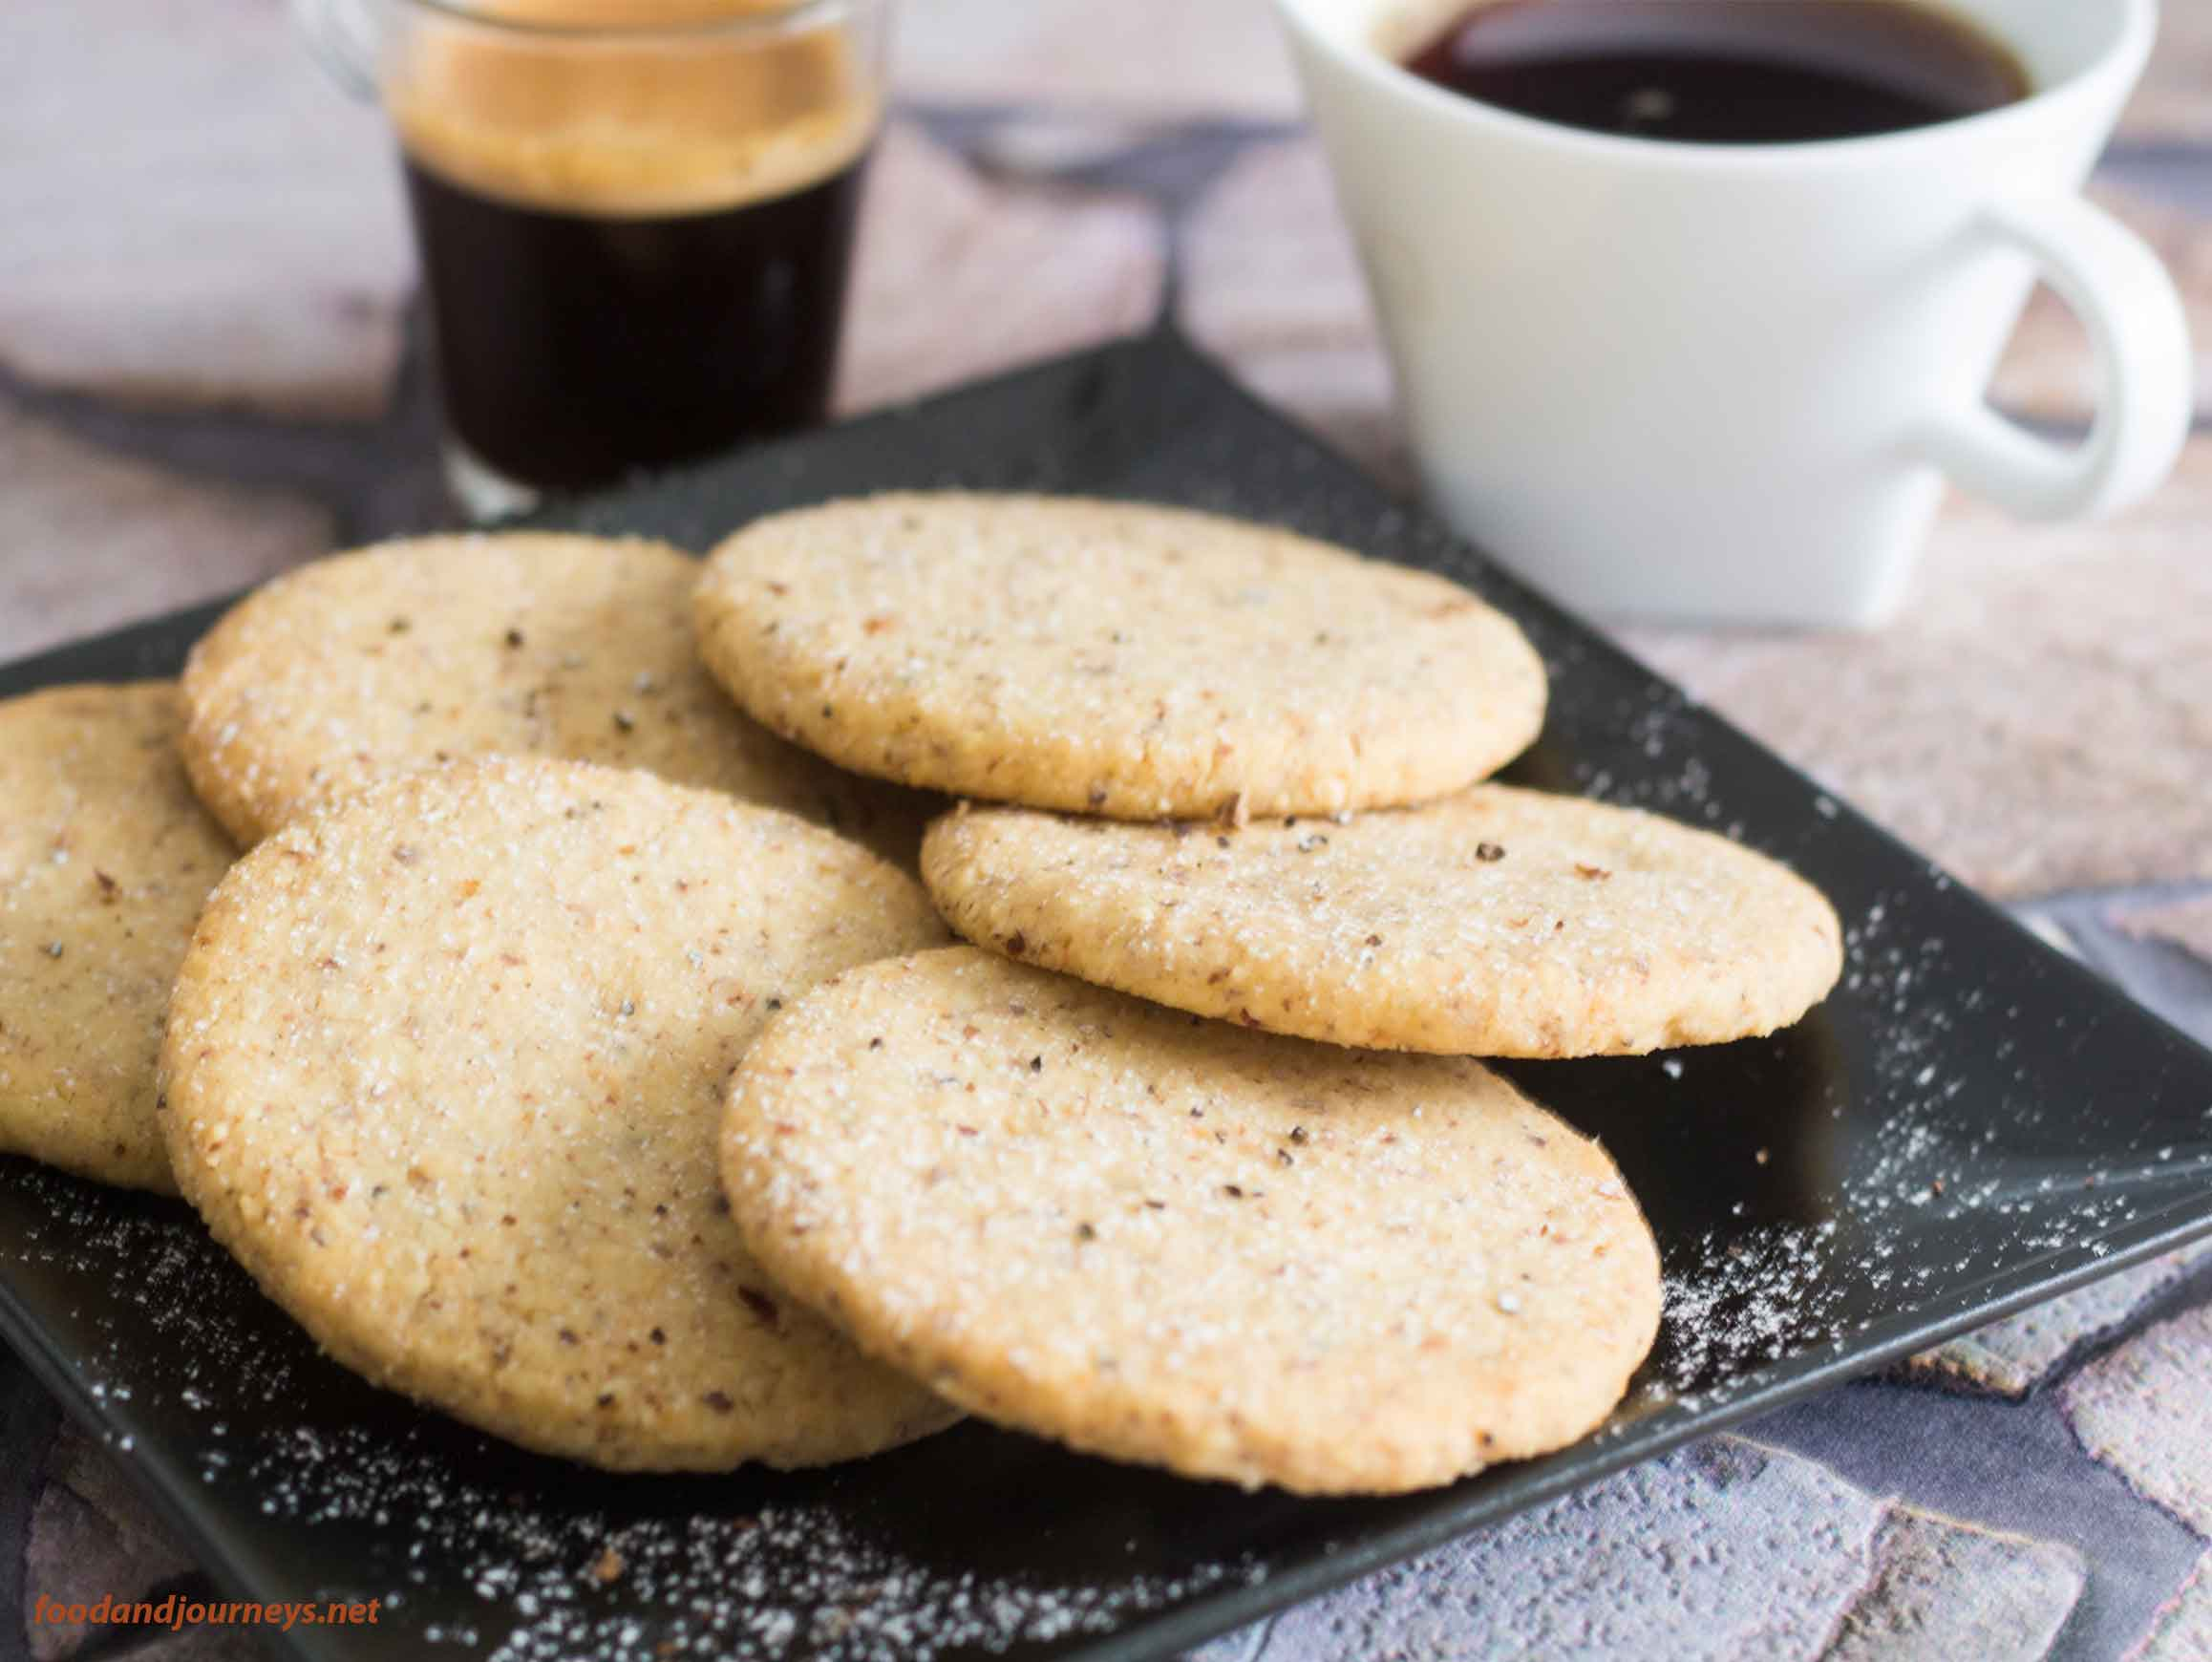 Serving of Swedish Hazelnut & Cardamom Cookies for snack